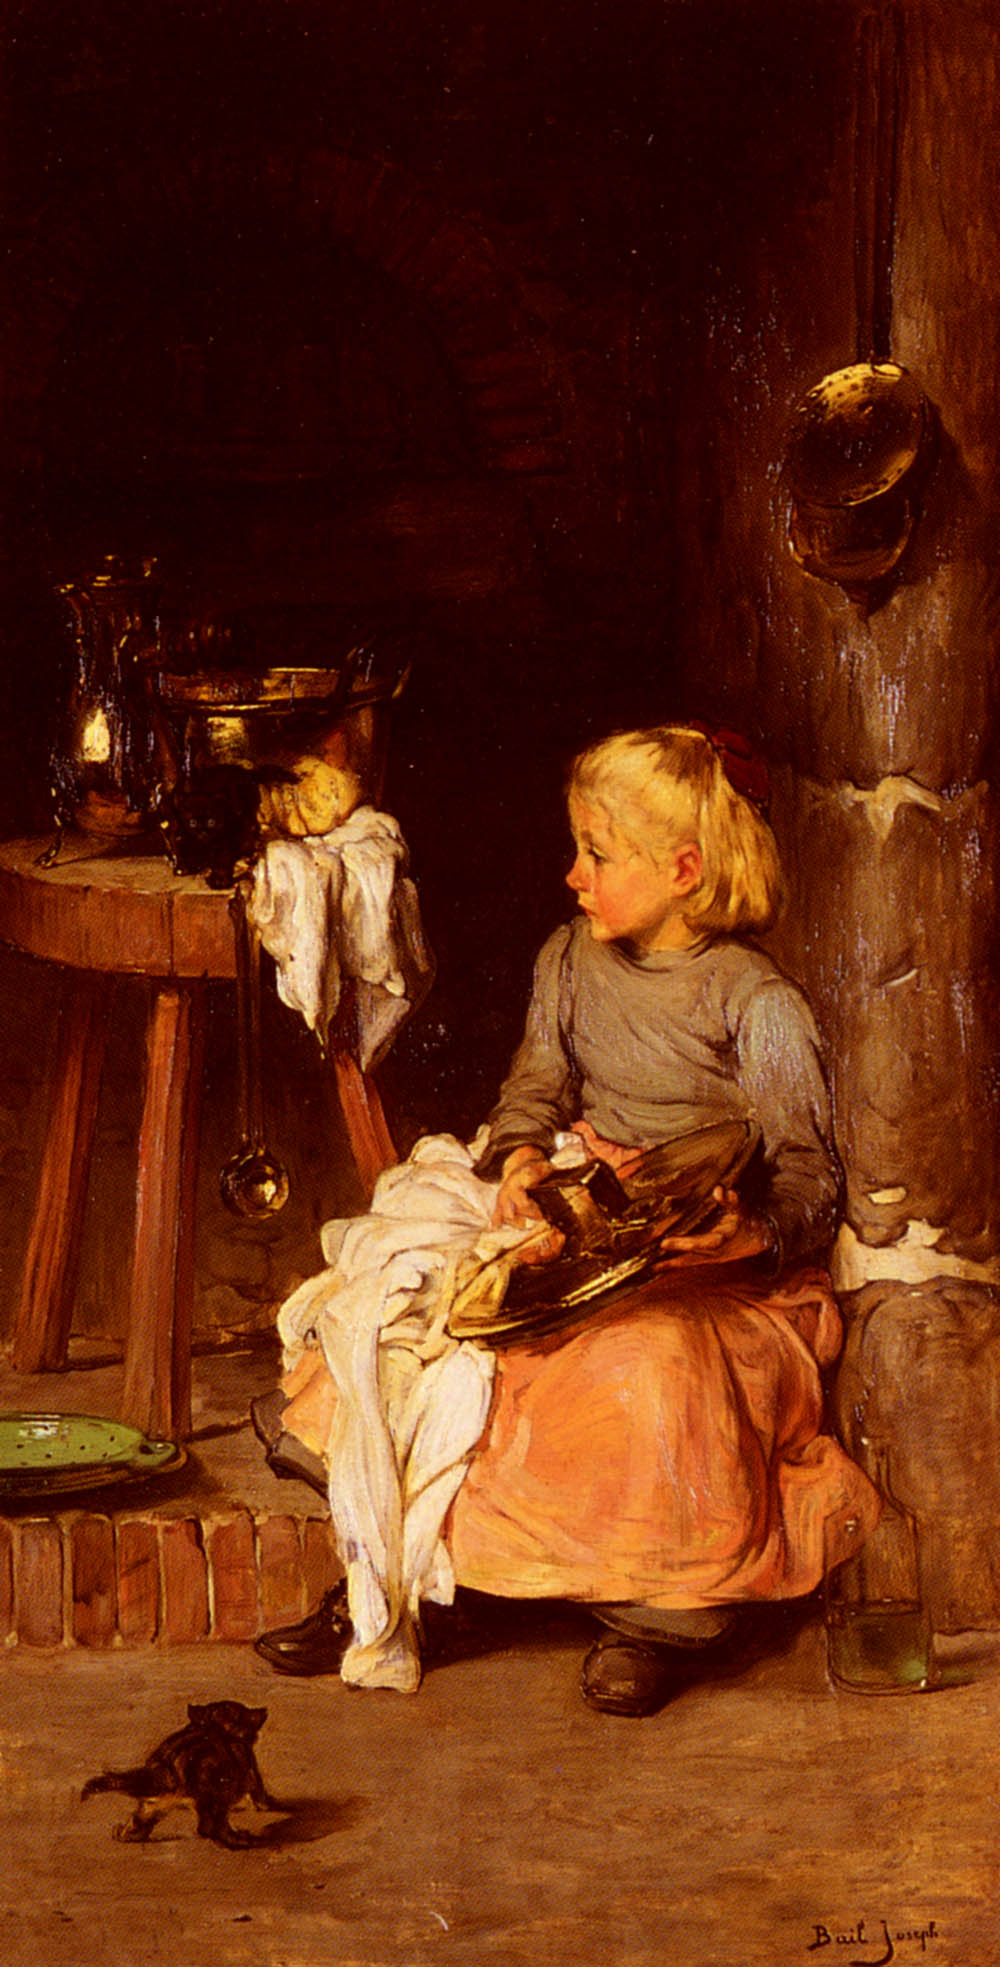 《The Little Girl with the Cauldron》约瑟夫·贝尔Joseph Bail